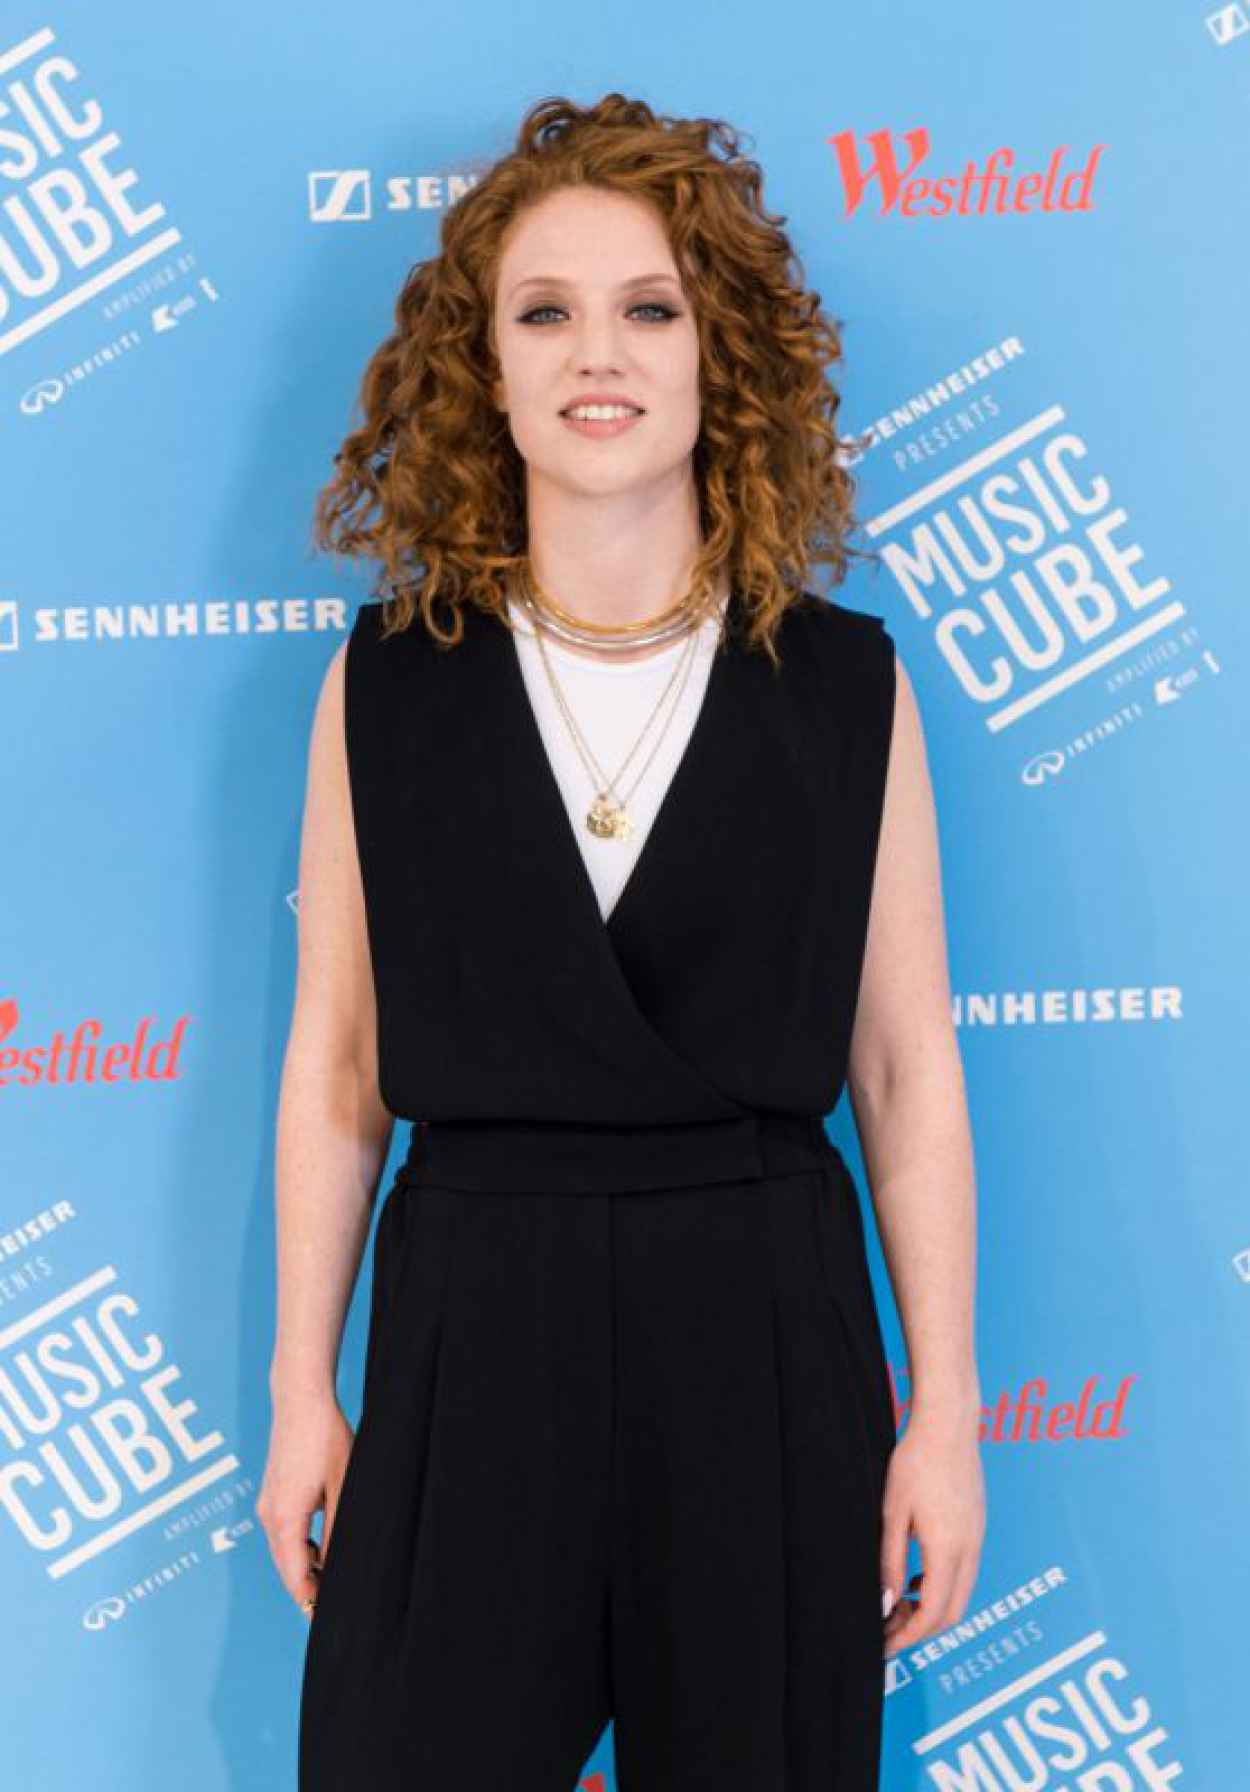 Jess Glynne - Performs on Stage During a Launch for MUSIC CUBE-1